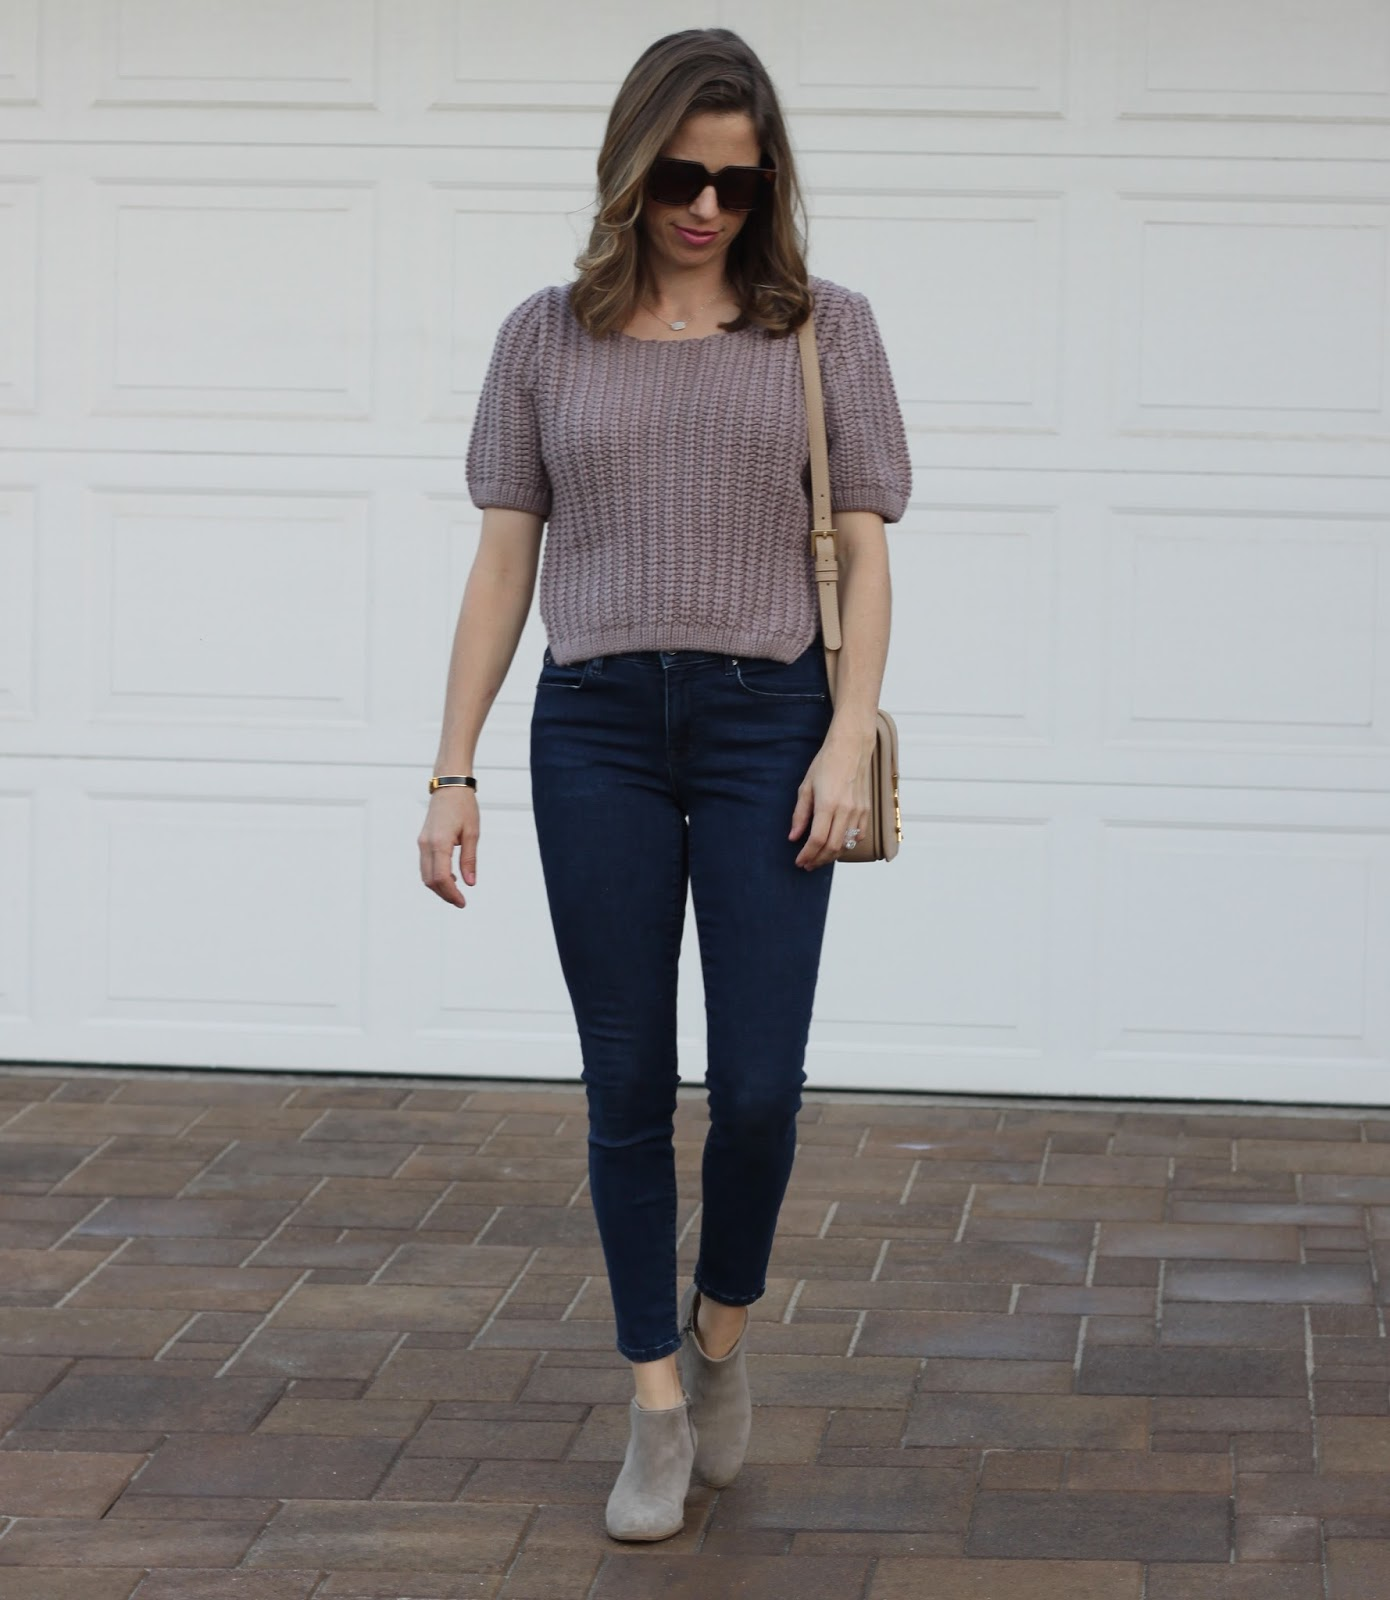 skinny jeans and sweater